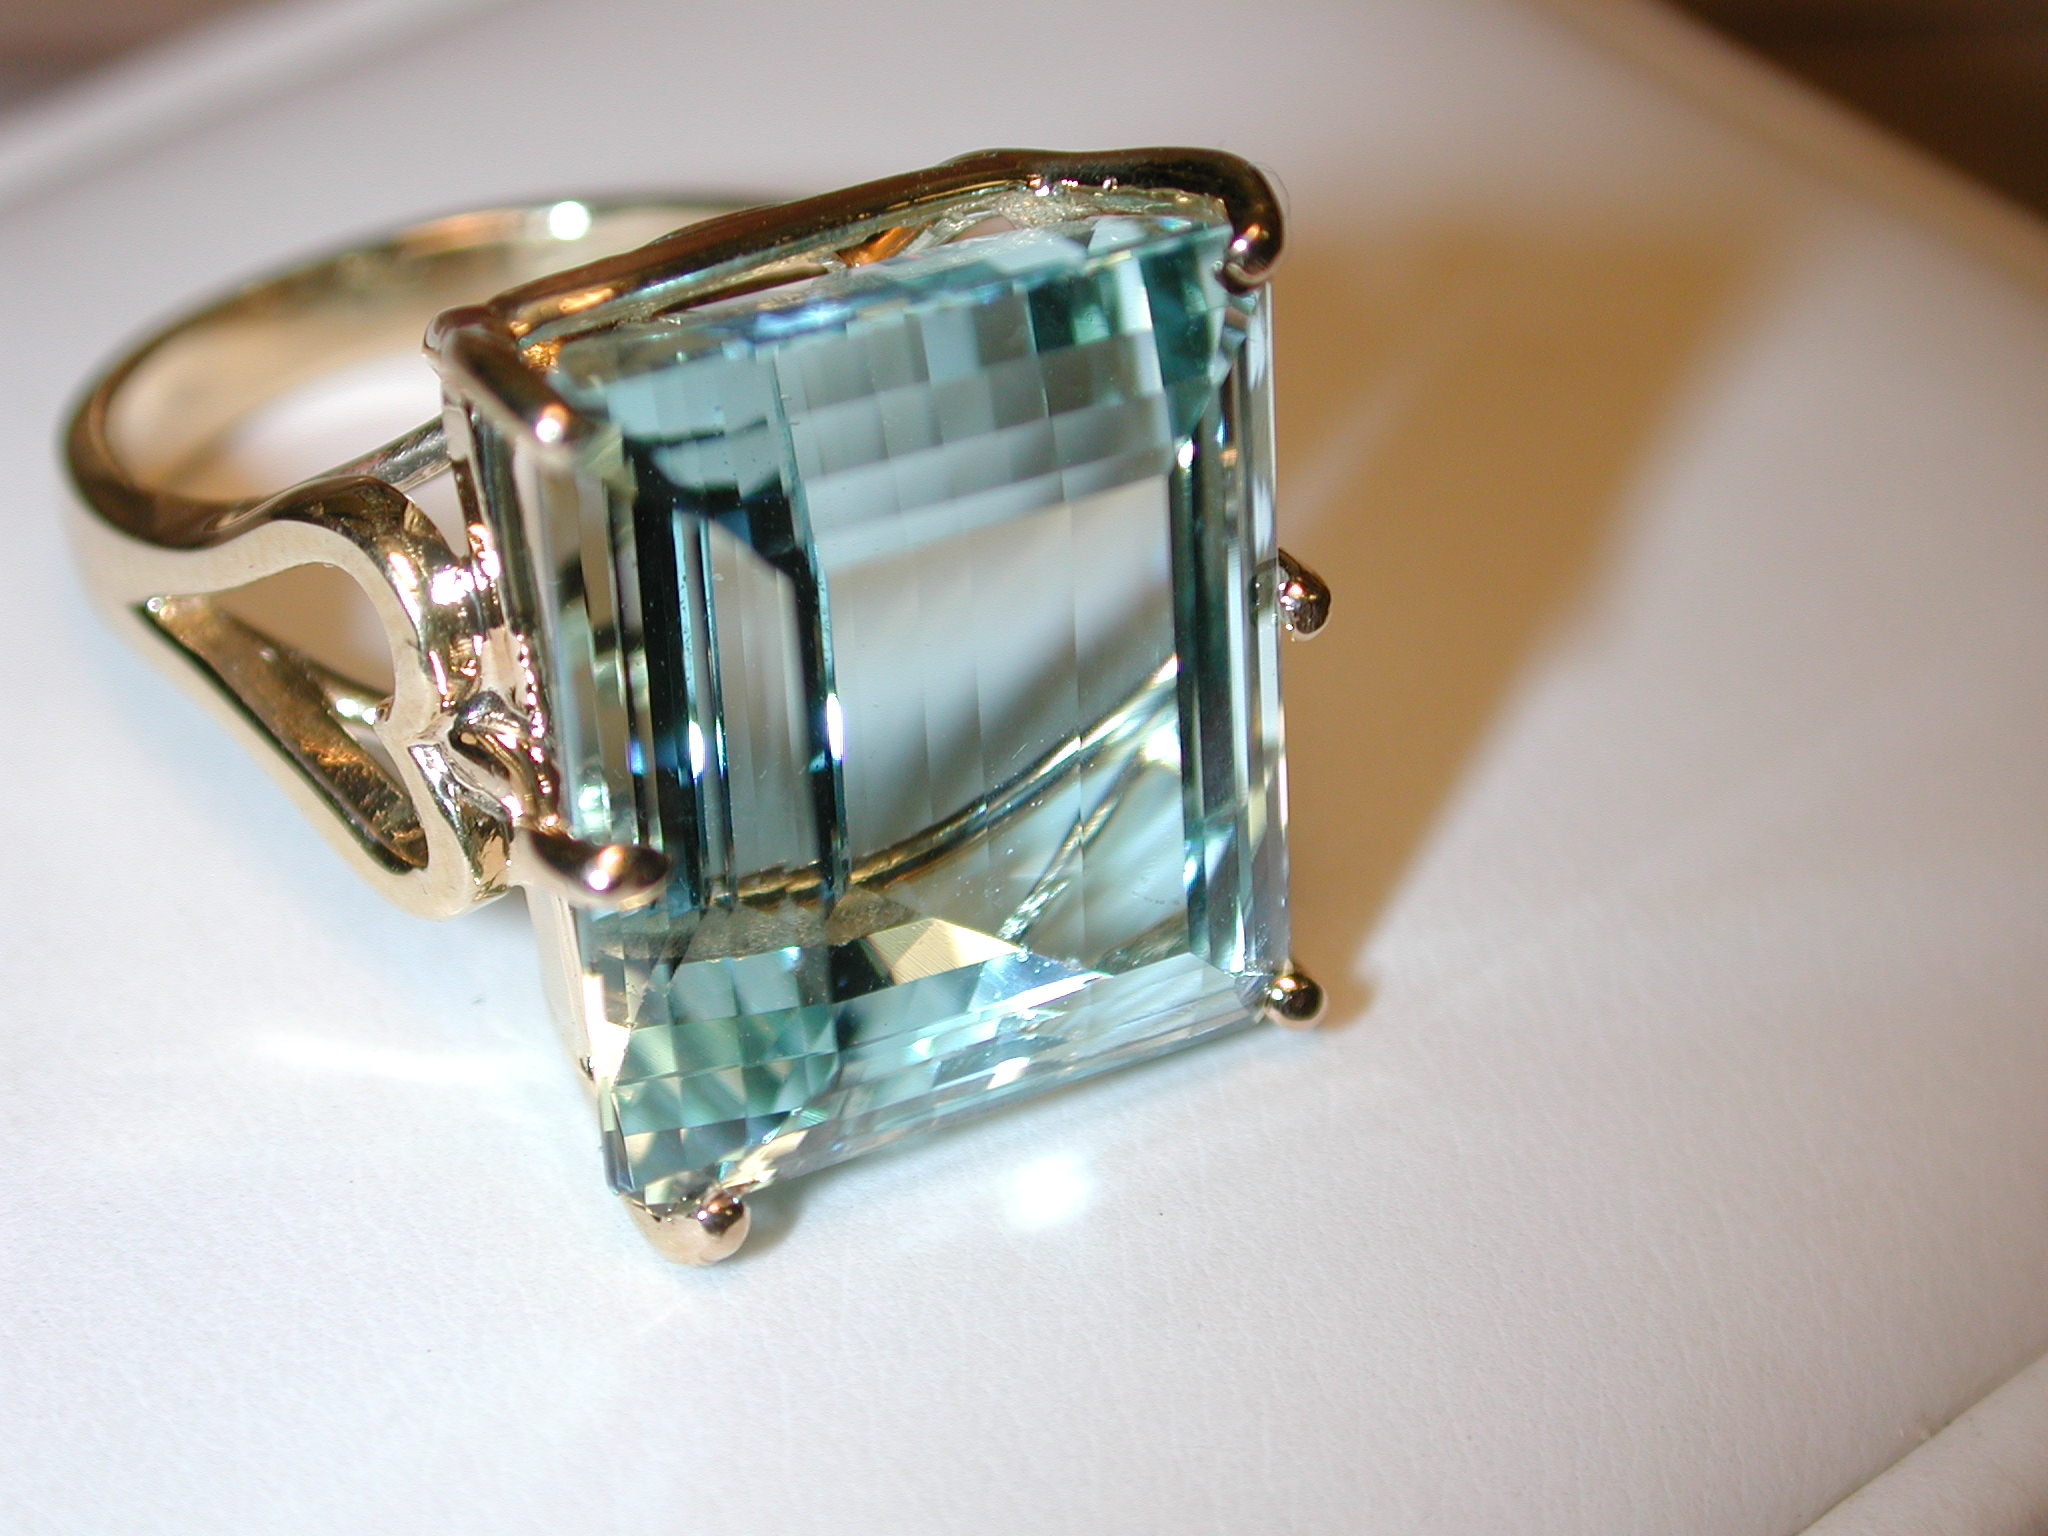 14KT 20+ carat Emerald Cut AQUAMARINE 16 x 15mm ring Stunning!